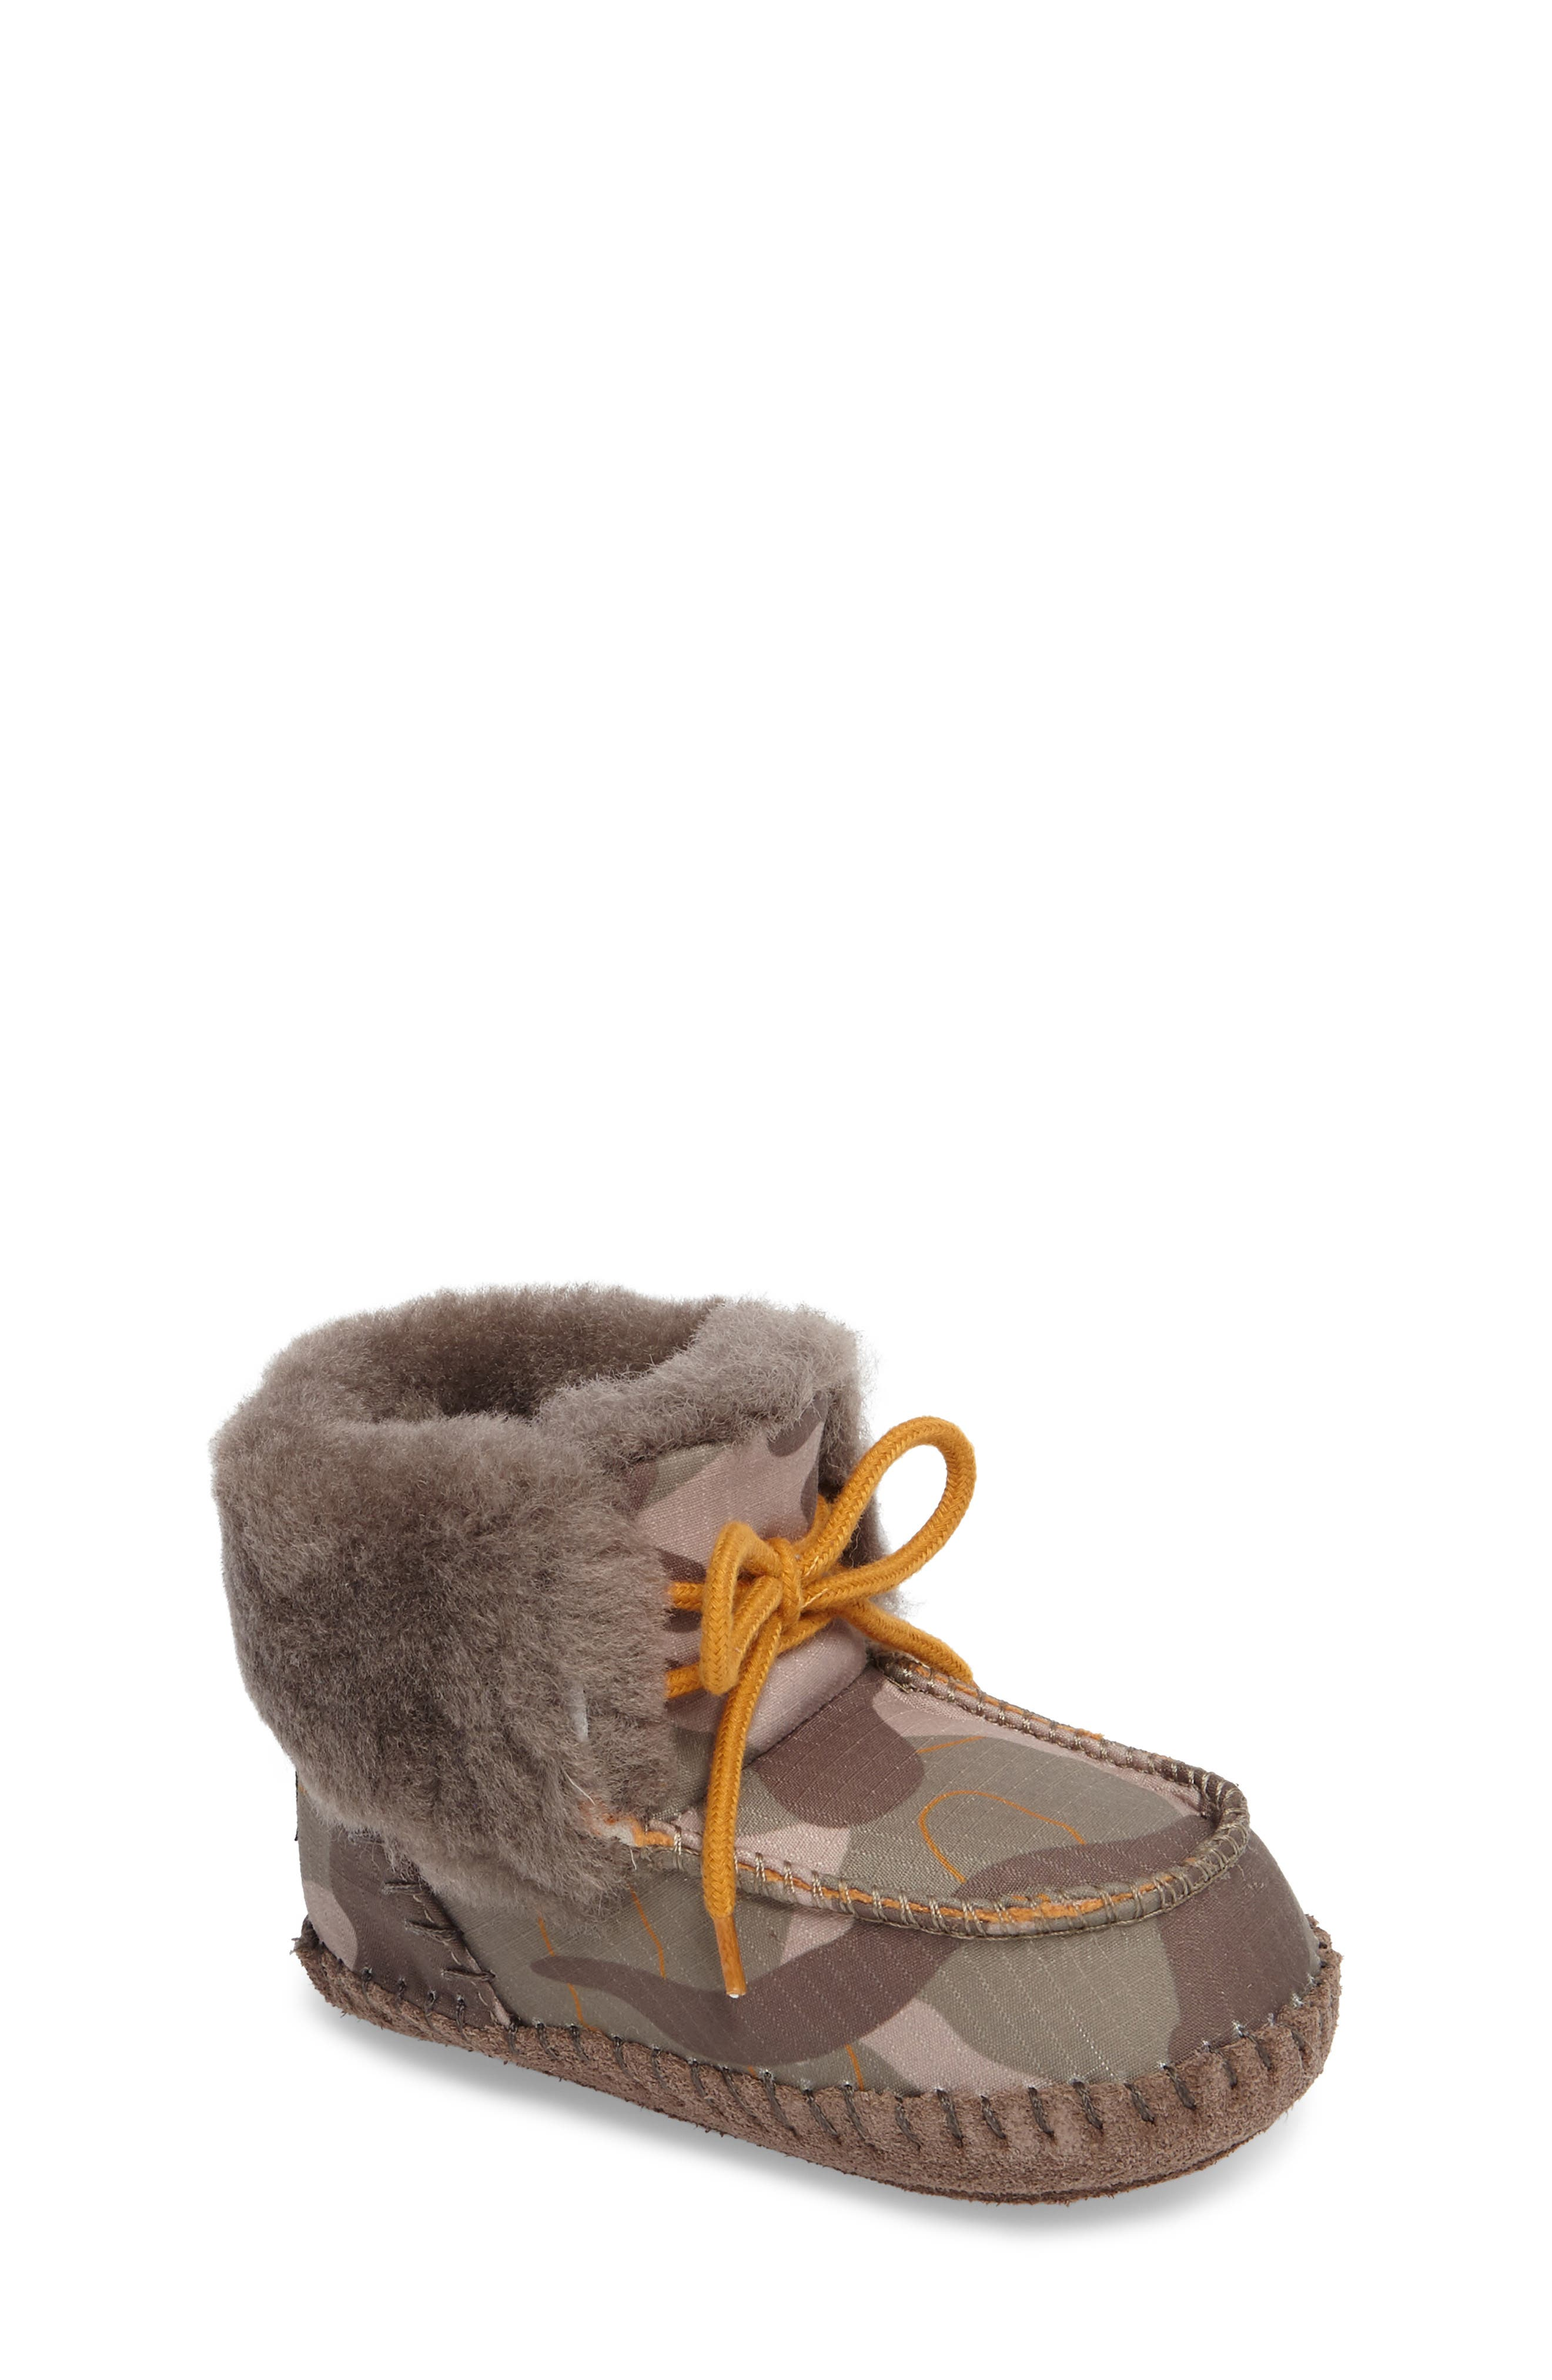 Sparrow Camo Genuine Shearling Moccasin Bootie,                             Main thumbnail 1, color,                             020